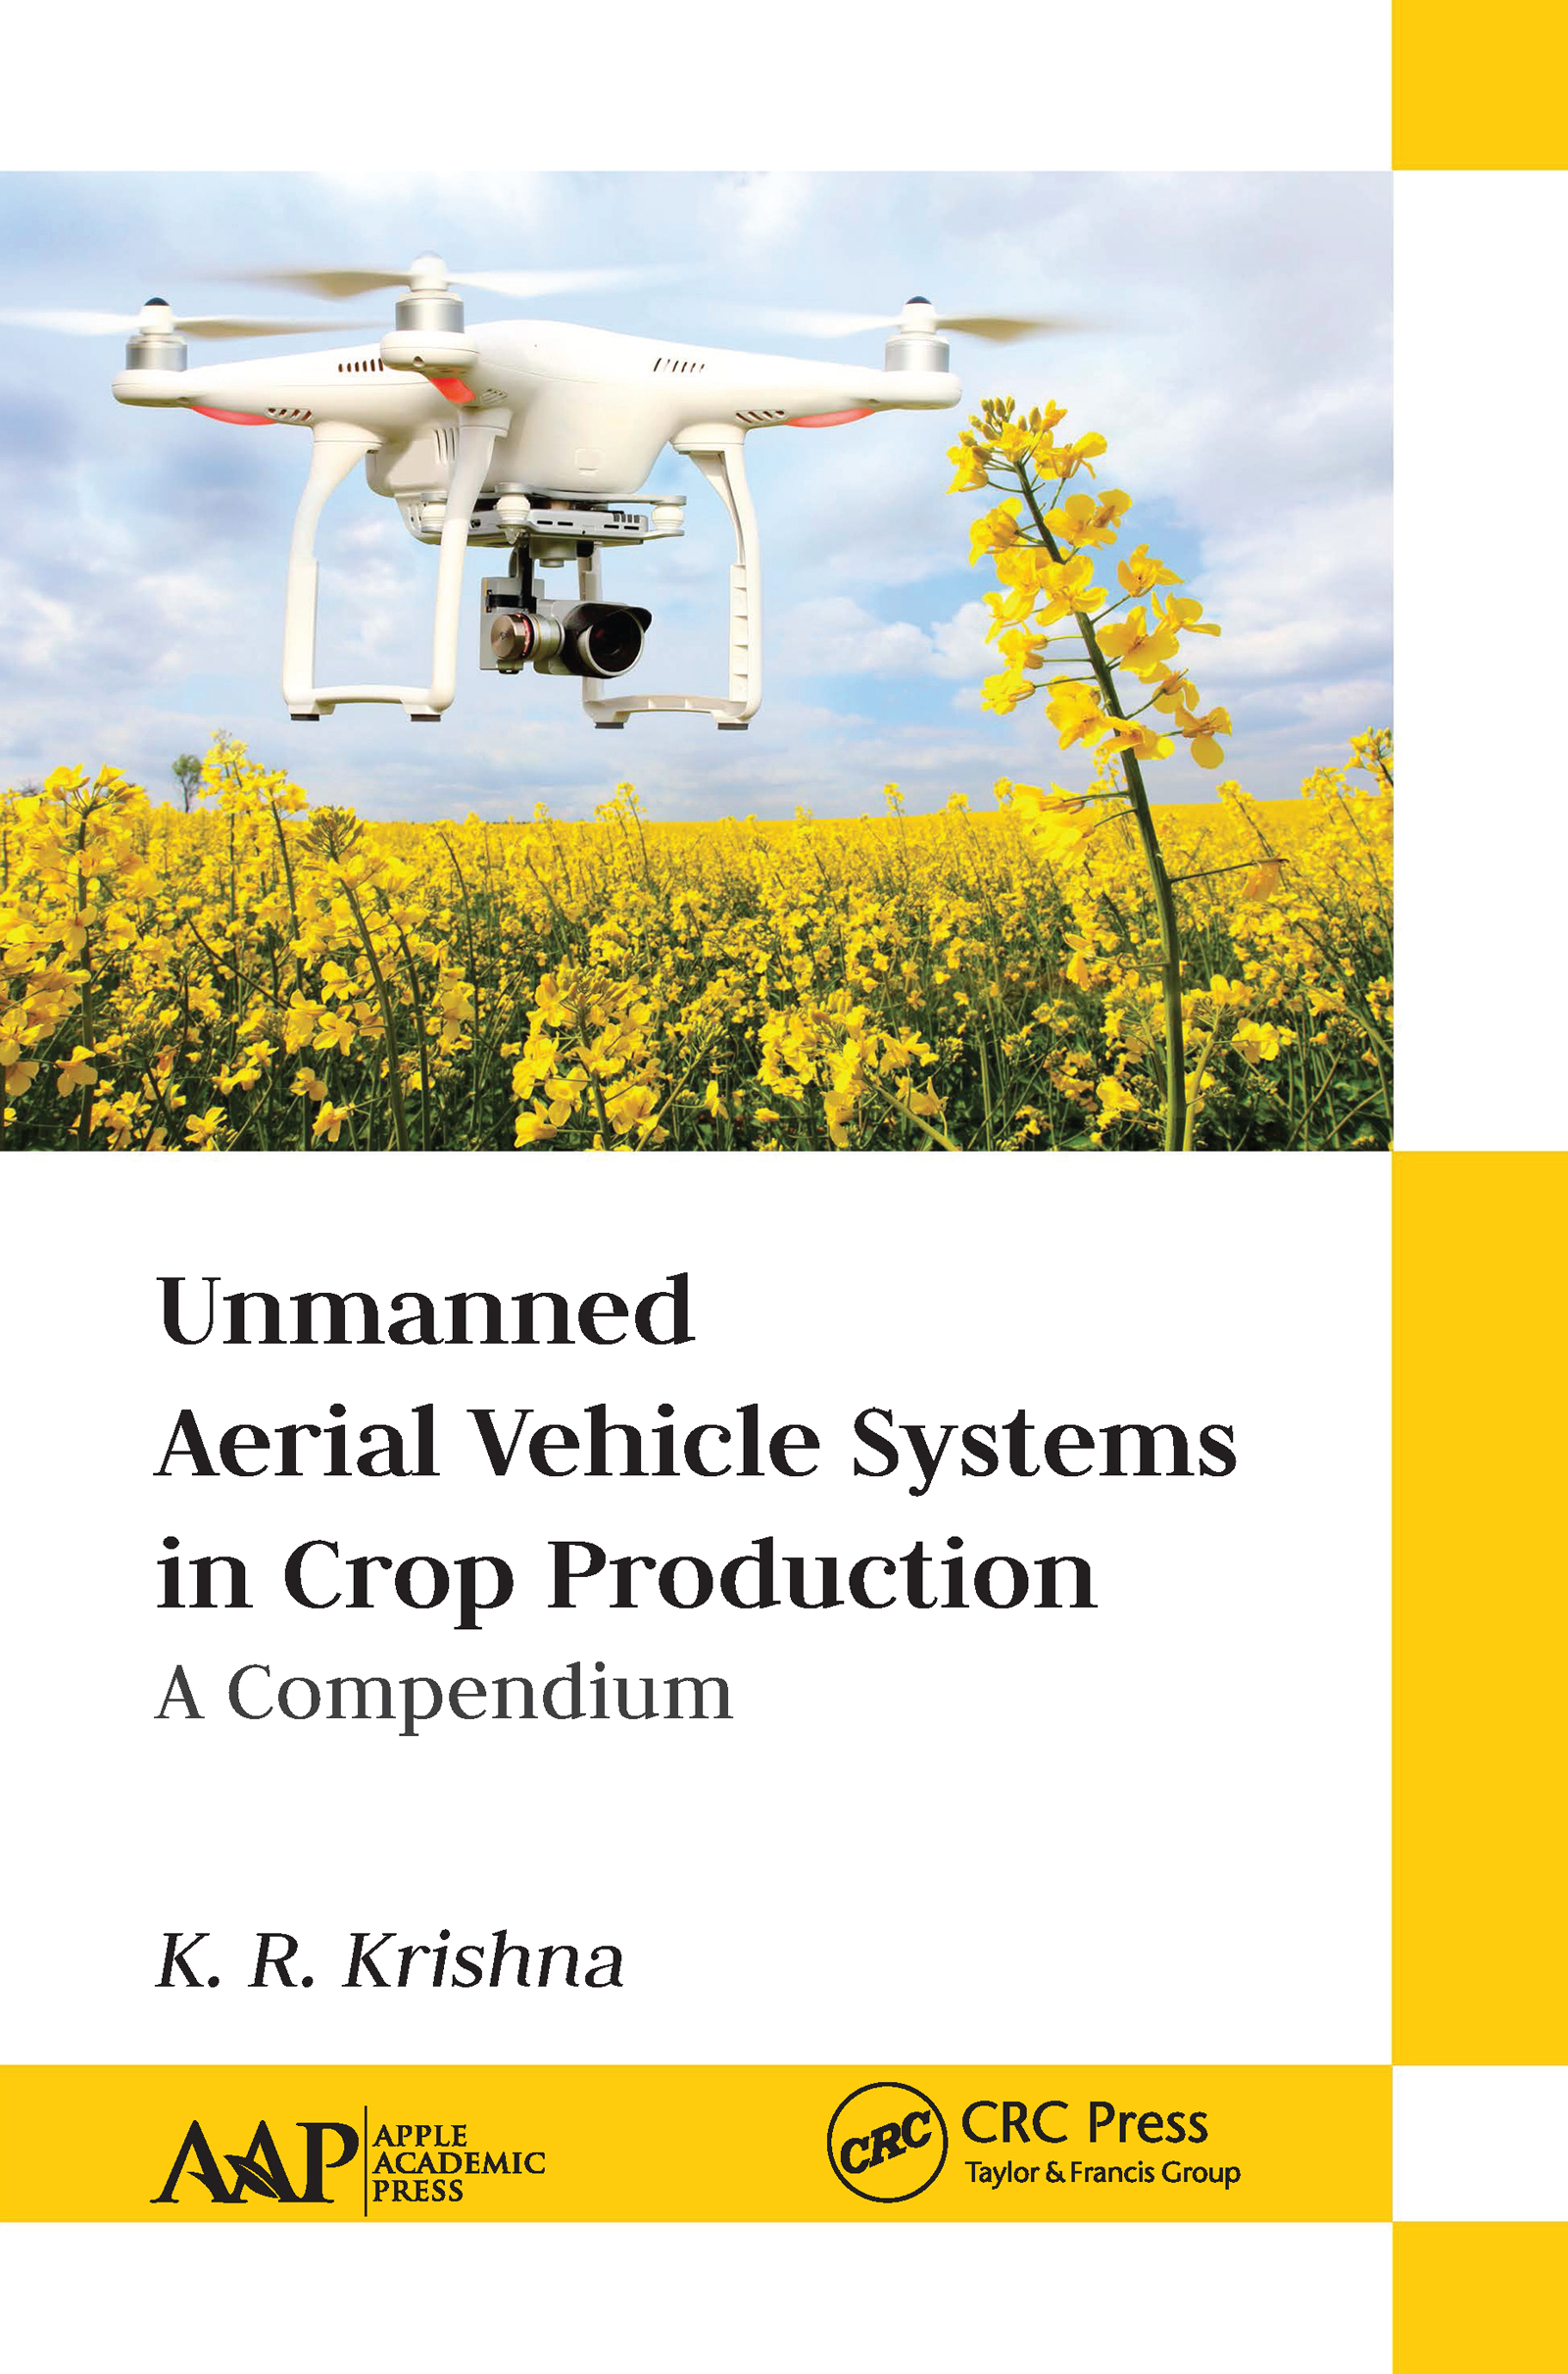 Unmanned Aerial Vehicle Systems in Crop Production